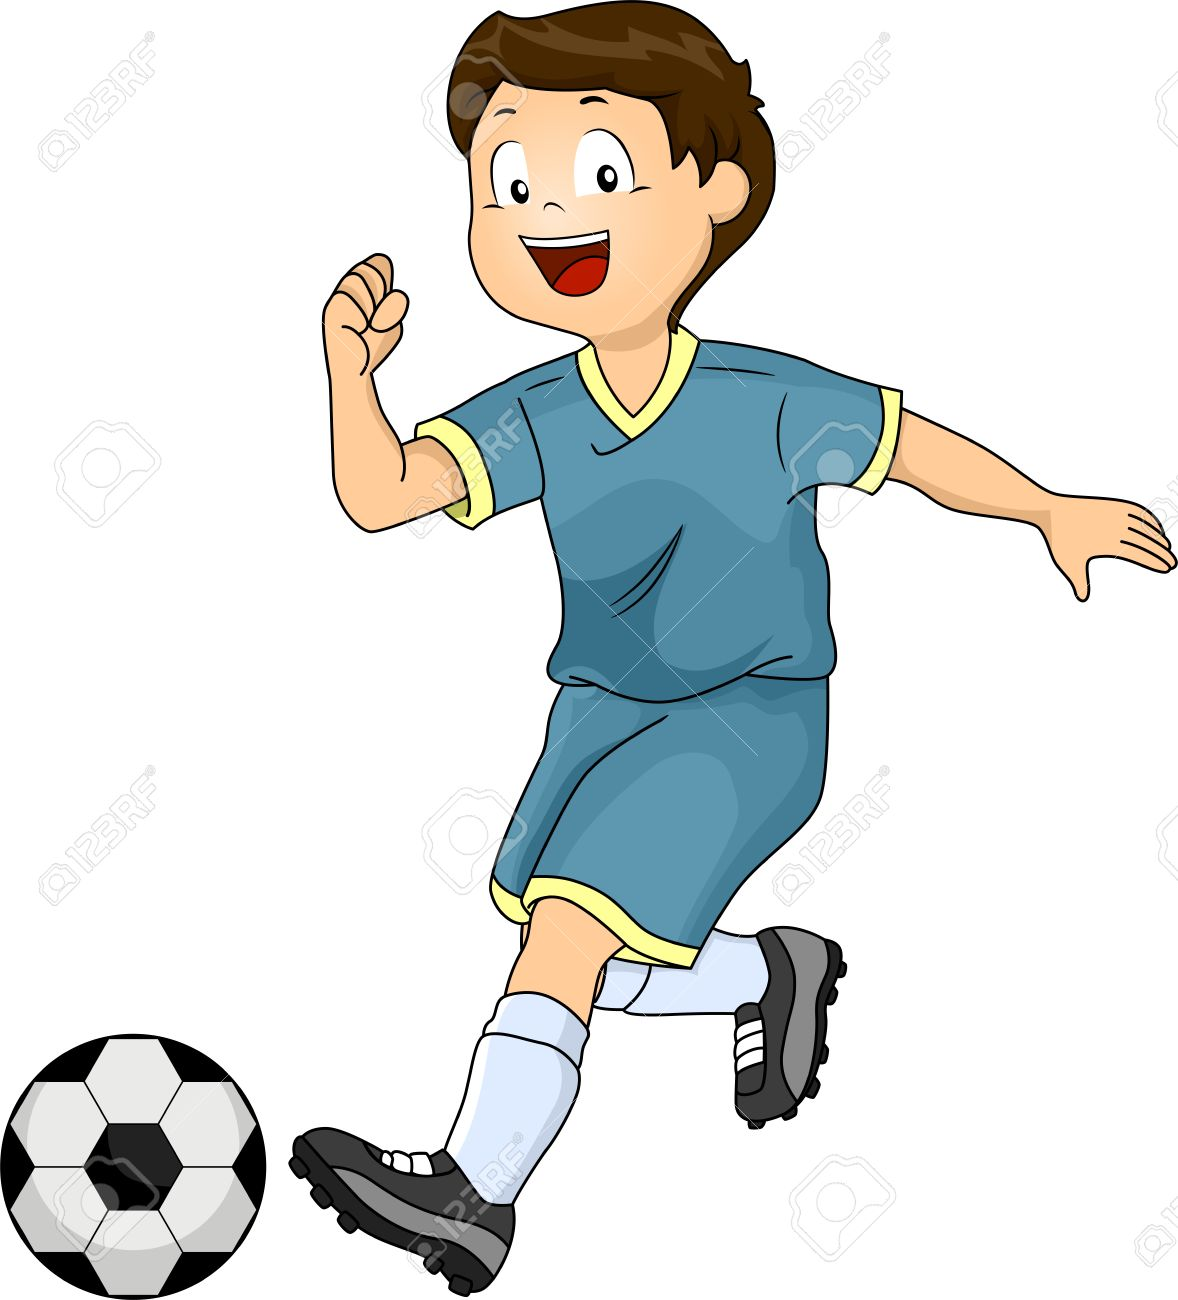 1178x1300 Illustration Of A Little Boy Kicking A Soccer Ball Stock Photo